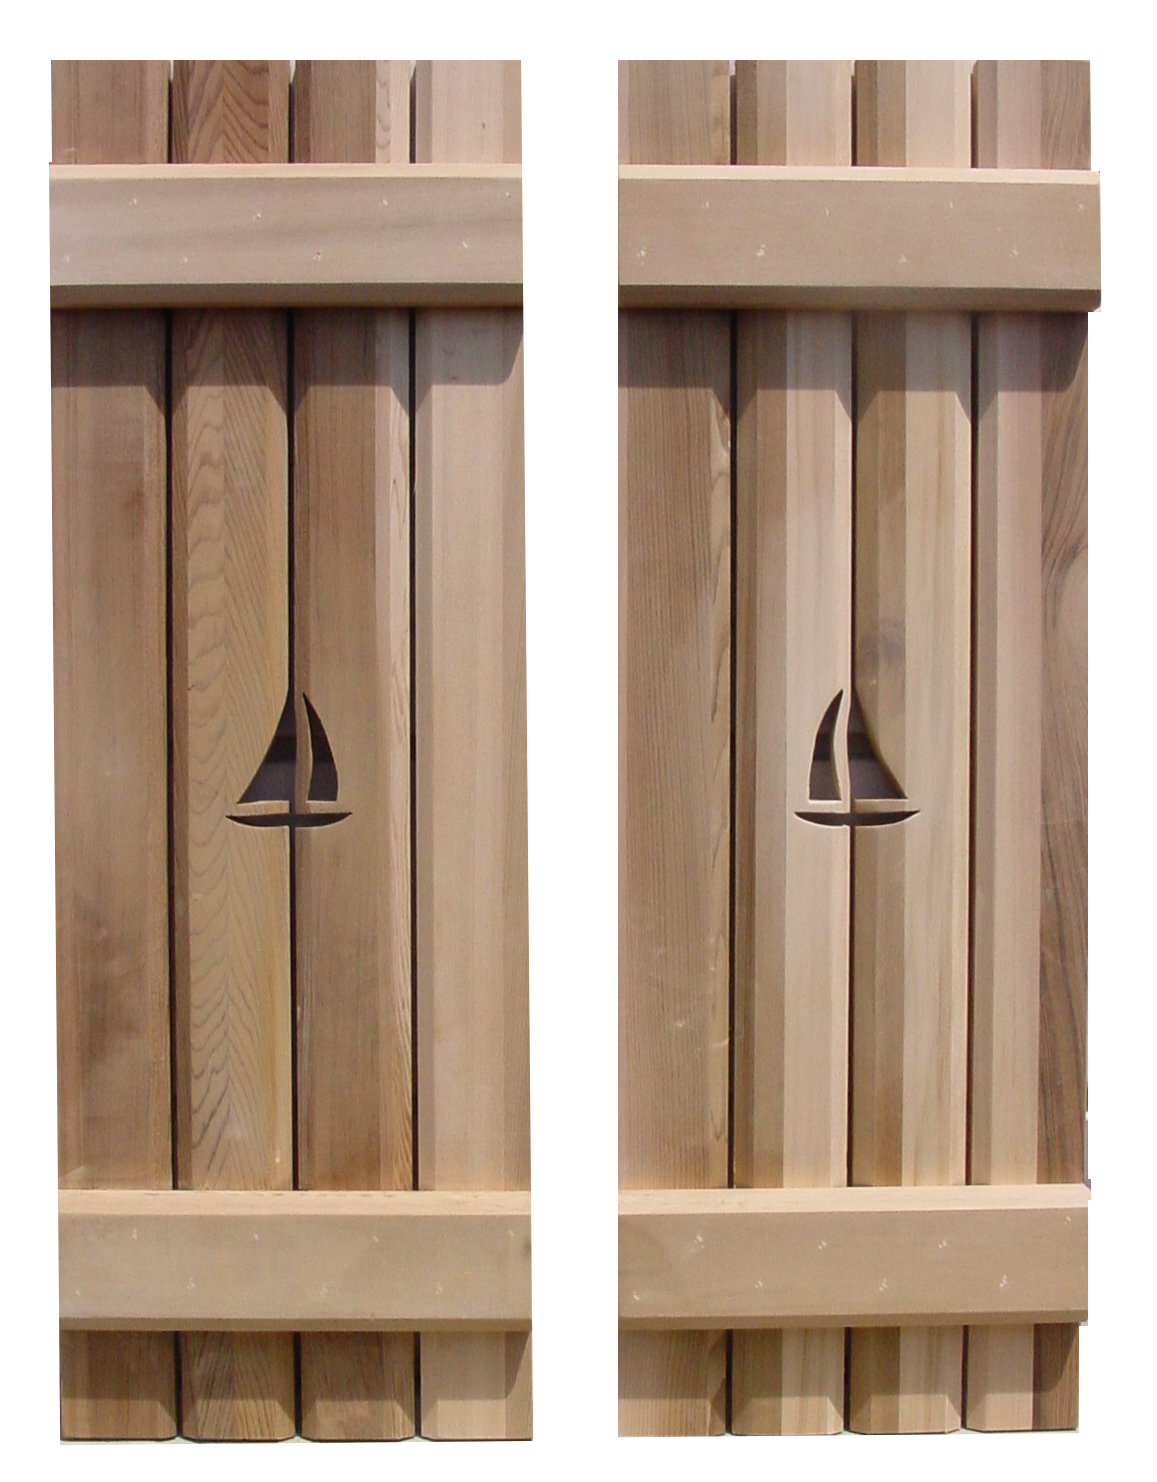 Unfinished Interior Wood Shutters